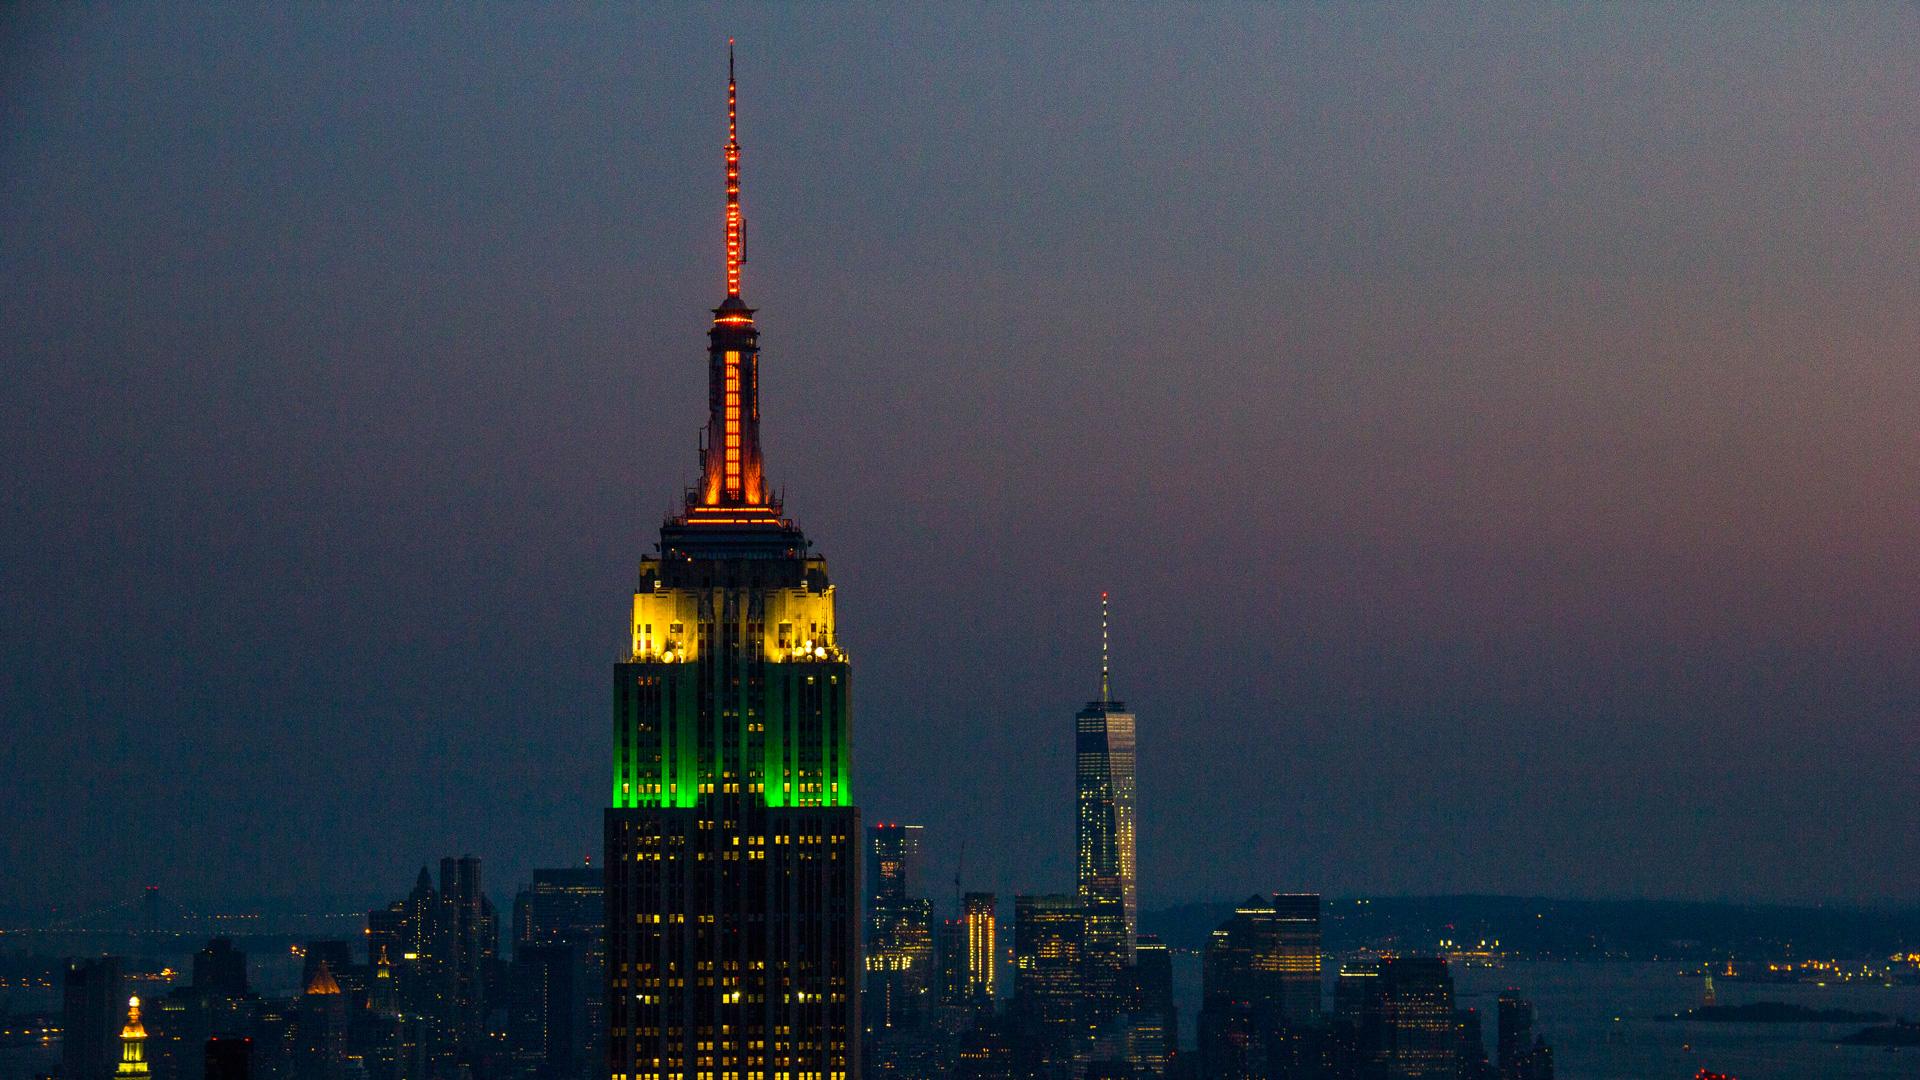 Indian Tricolour projected on New York's iconic Empire State Building